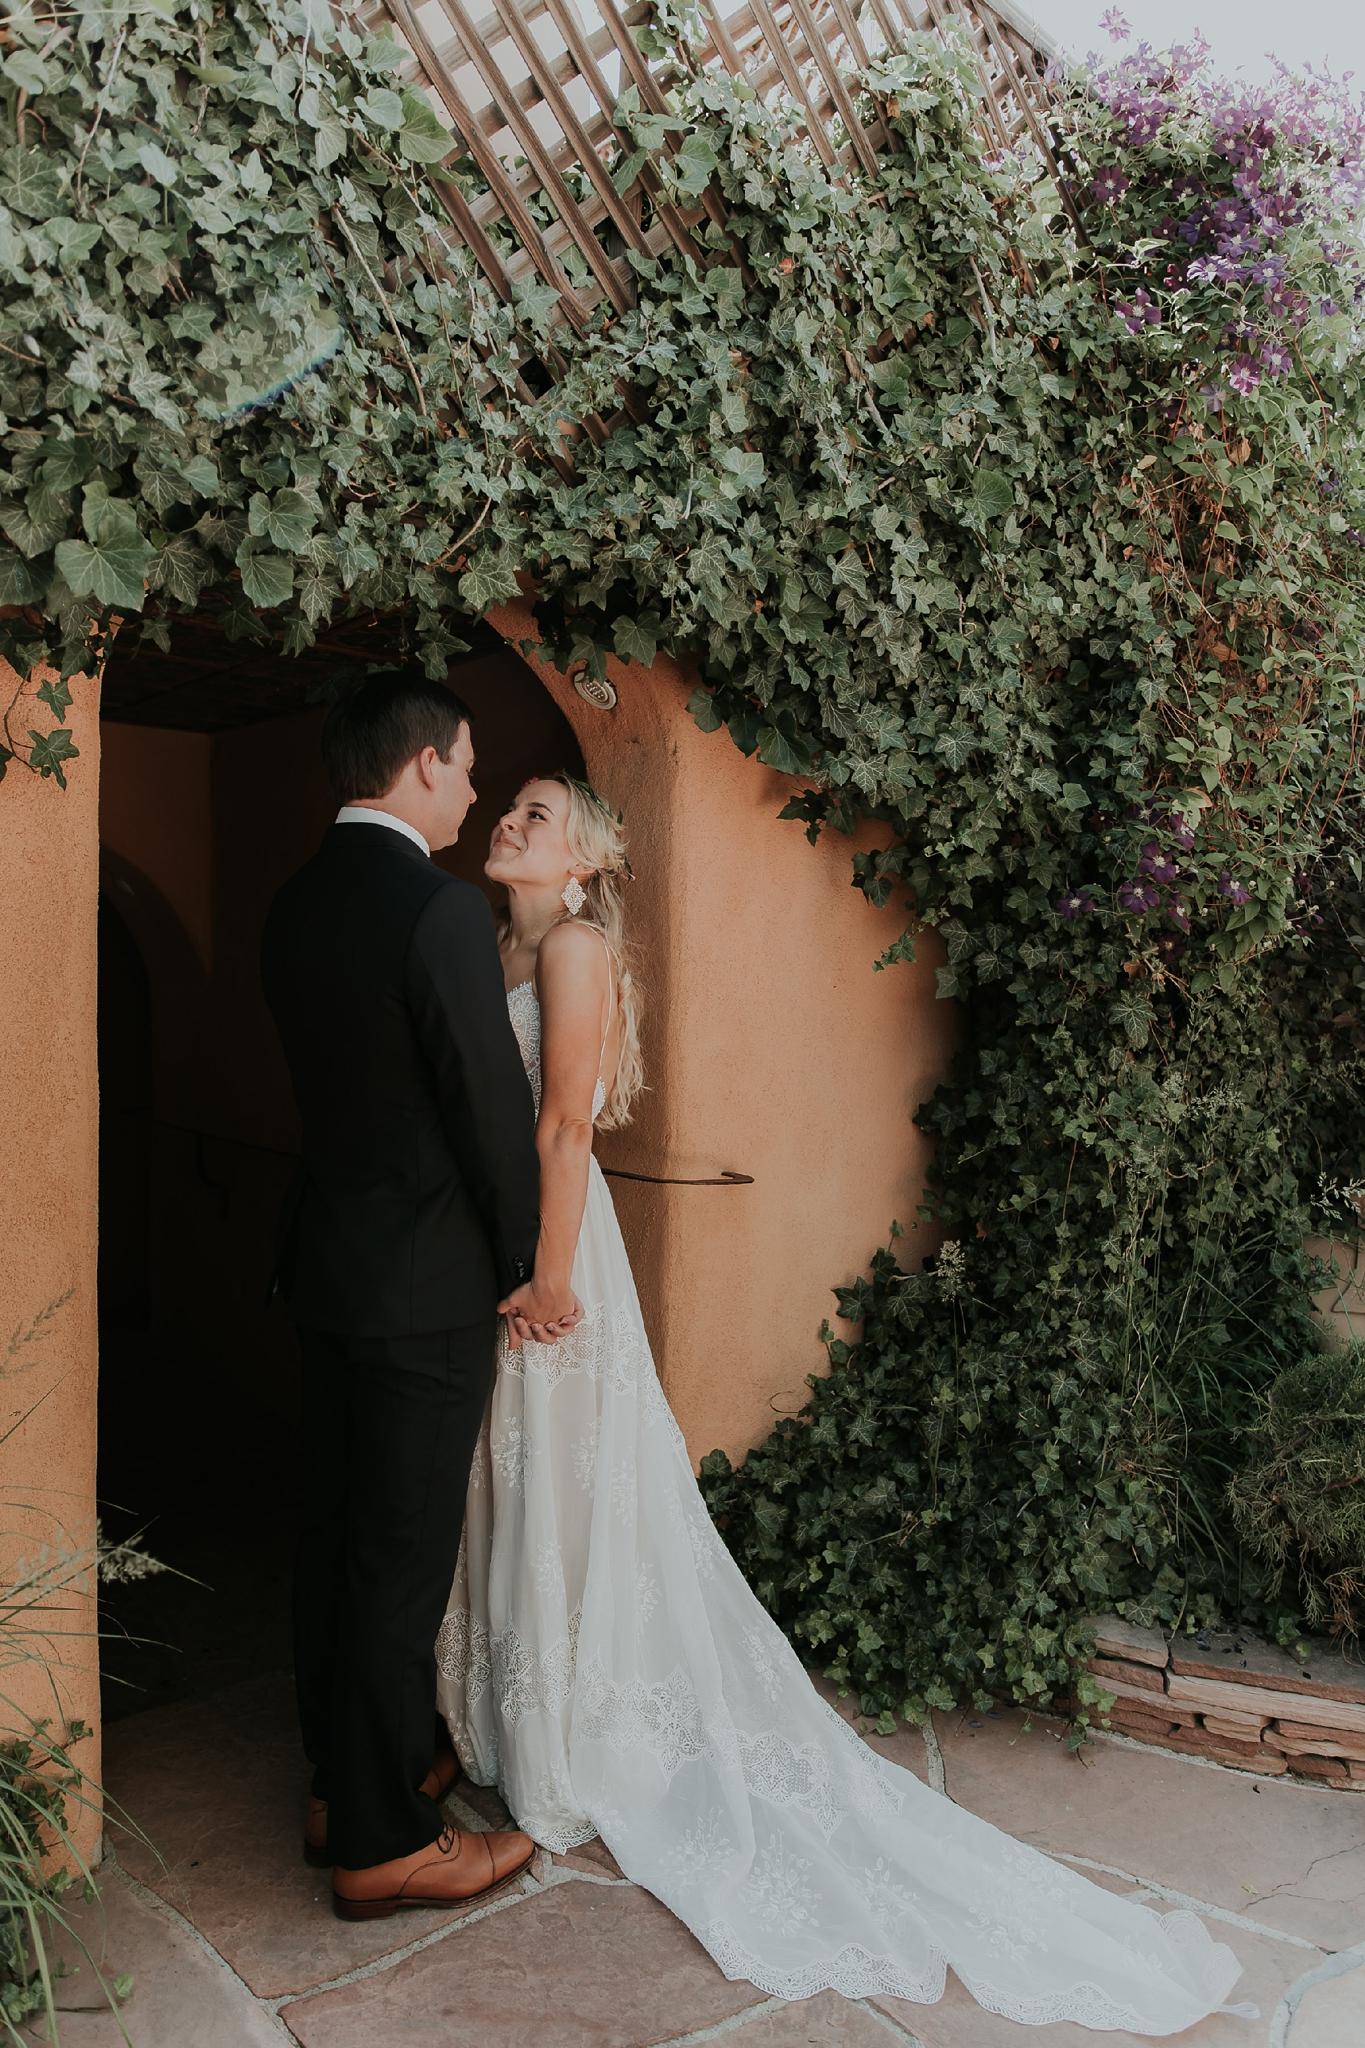 Alicia+lucia+photography+-+albuquerque+wedding+photographer+-+santa+fe+wedding+photography+-+new+mexico+wedding+photographer+-+new+mexico+wedding+-+wedding+gowns+-+bridal+gowns+-+a+line+wedding+gown_0051.jpg